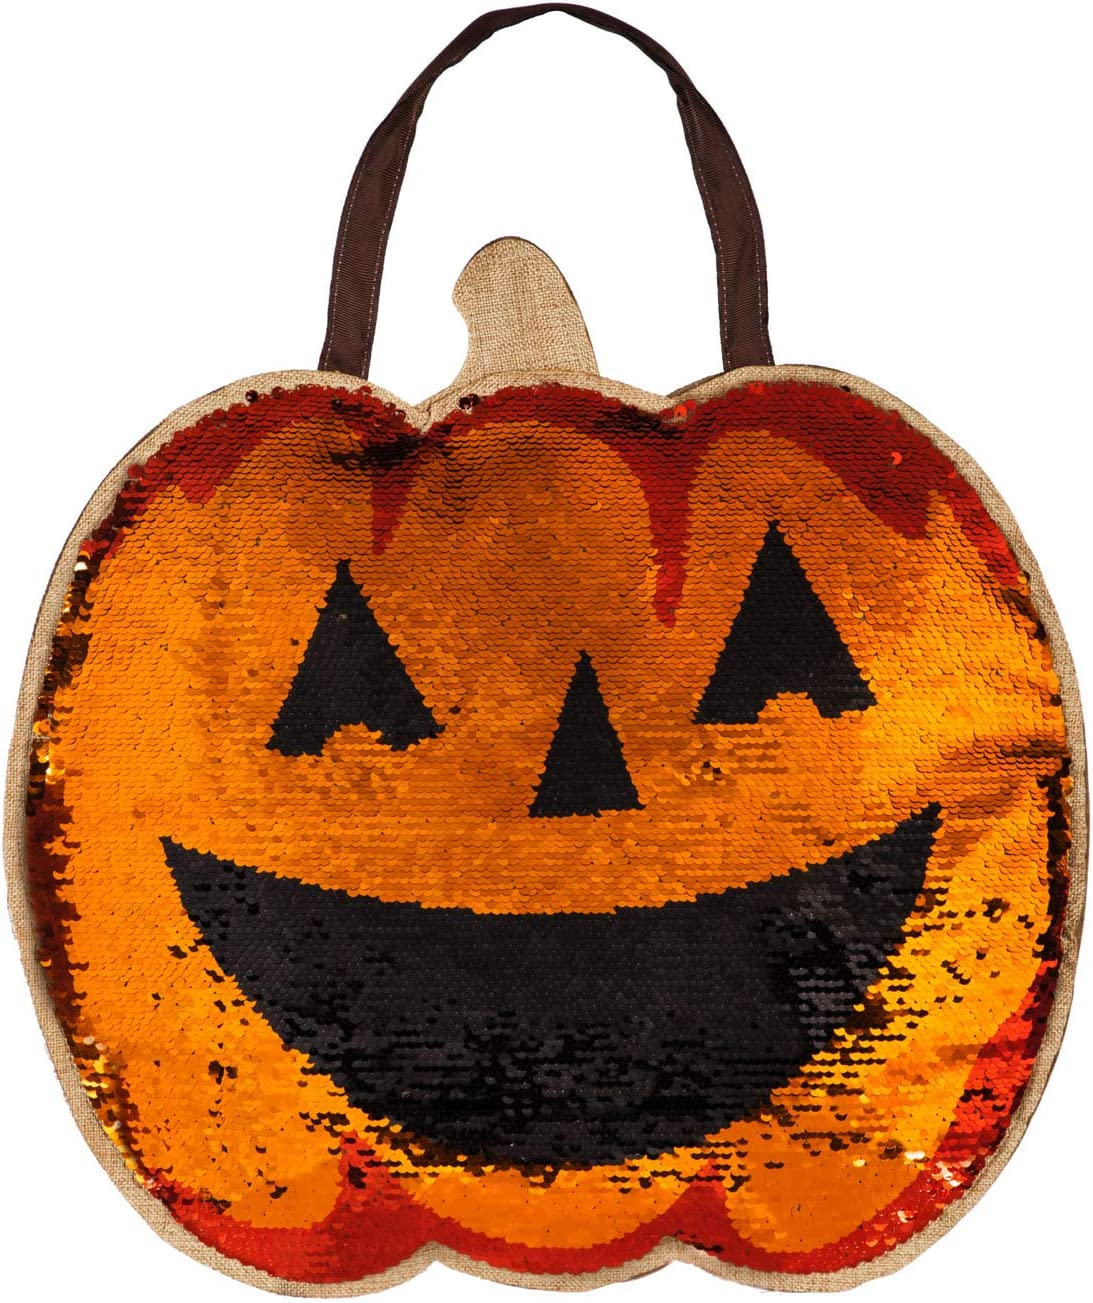 Evergreen Flag Beautiful Reversible Sequin Pumpkin and Jack-O-Lantern Hanging Door Décor - 17 x 1 x 17 Inches Fade and Weather Resistant Outdoor Decoration for Homes, Yards and Gardens